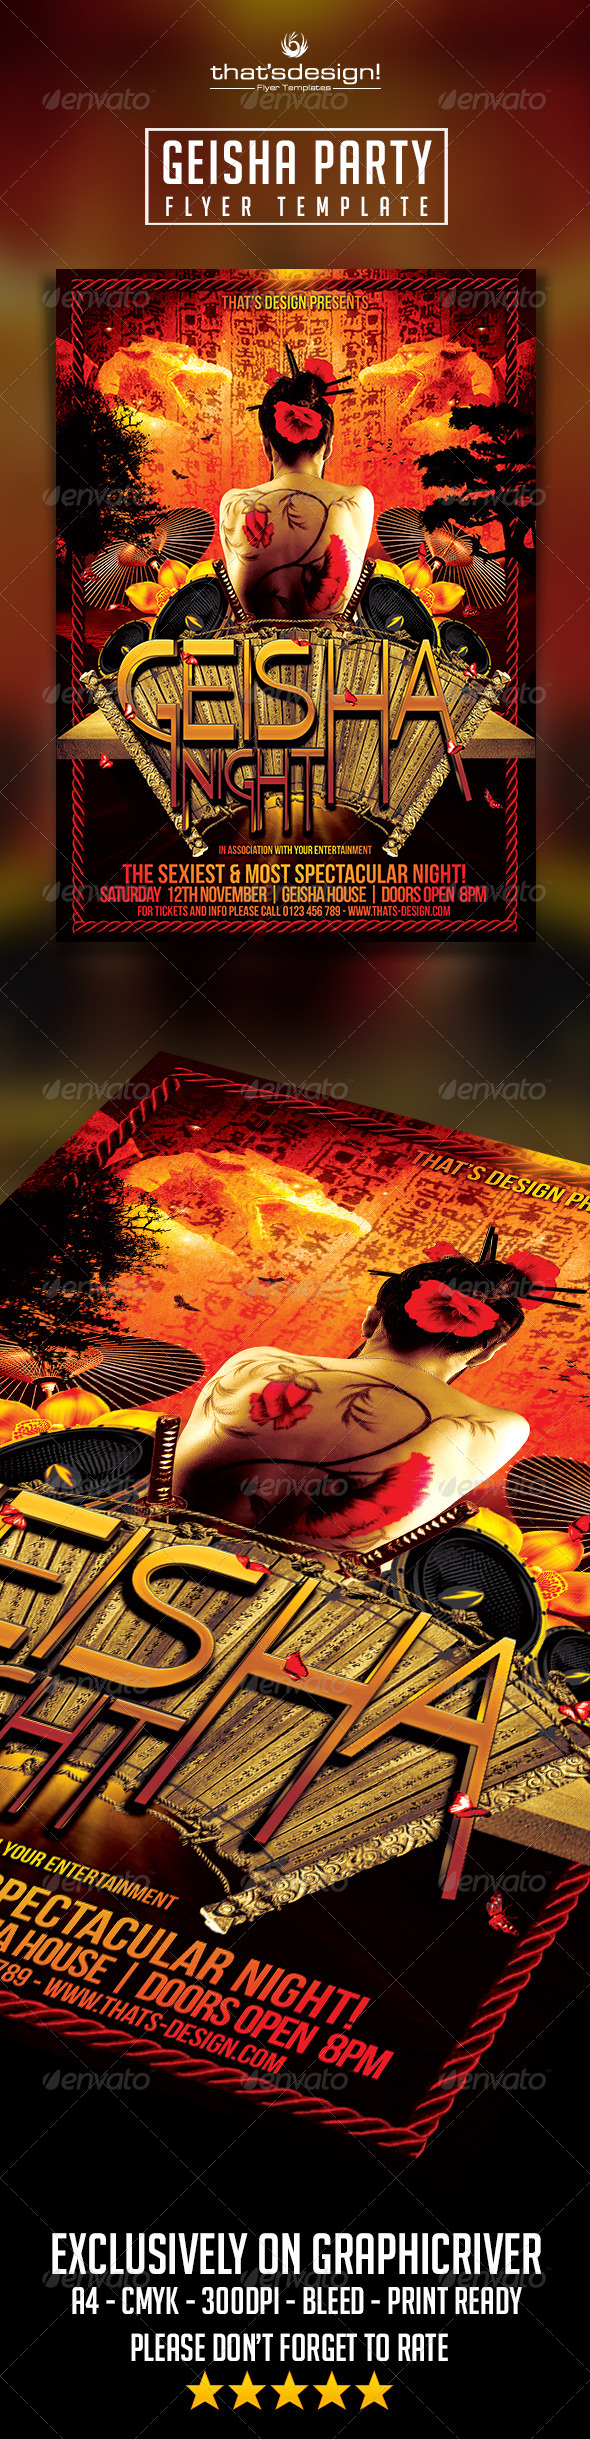 GraphicRiver Geisha Party Flyer Template 8220849